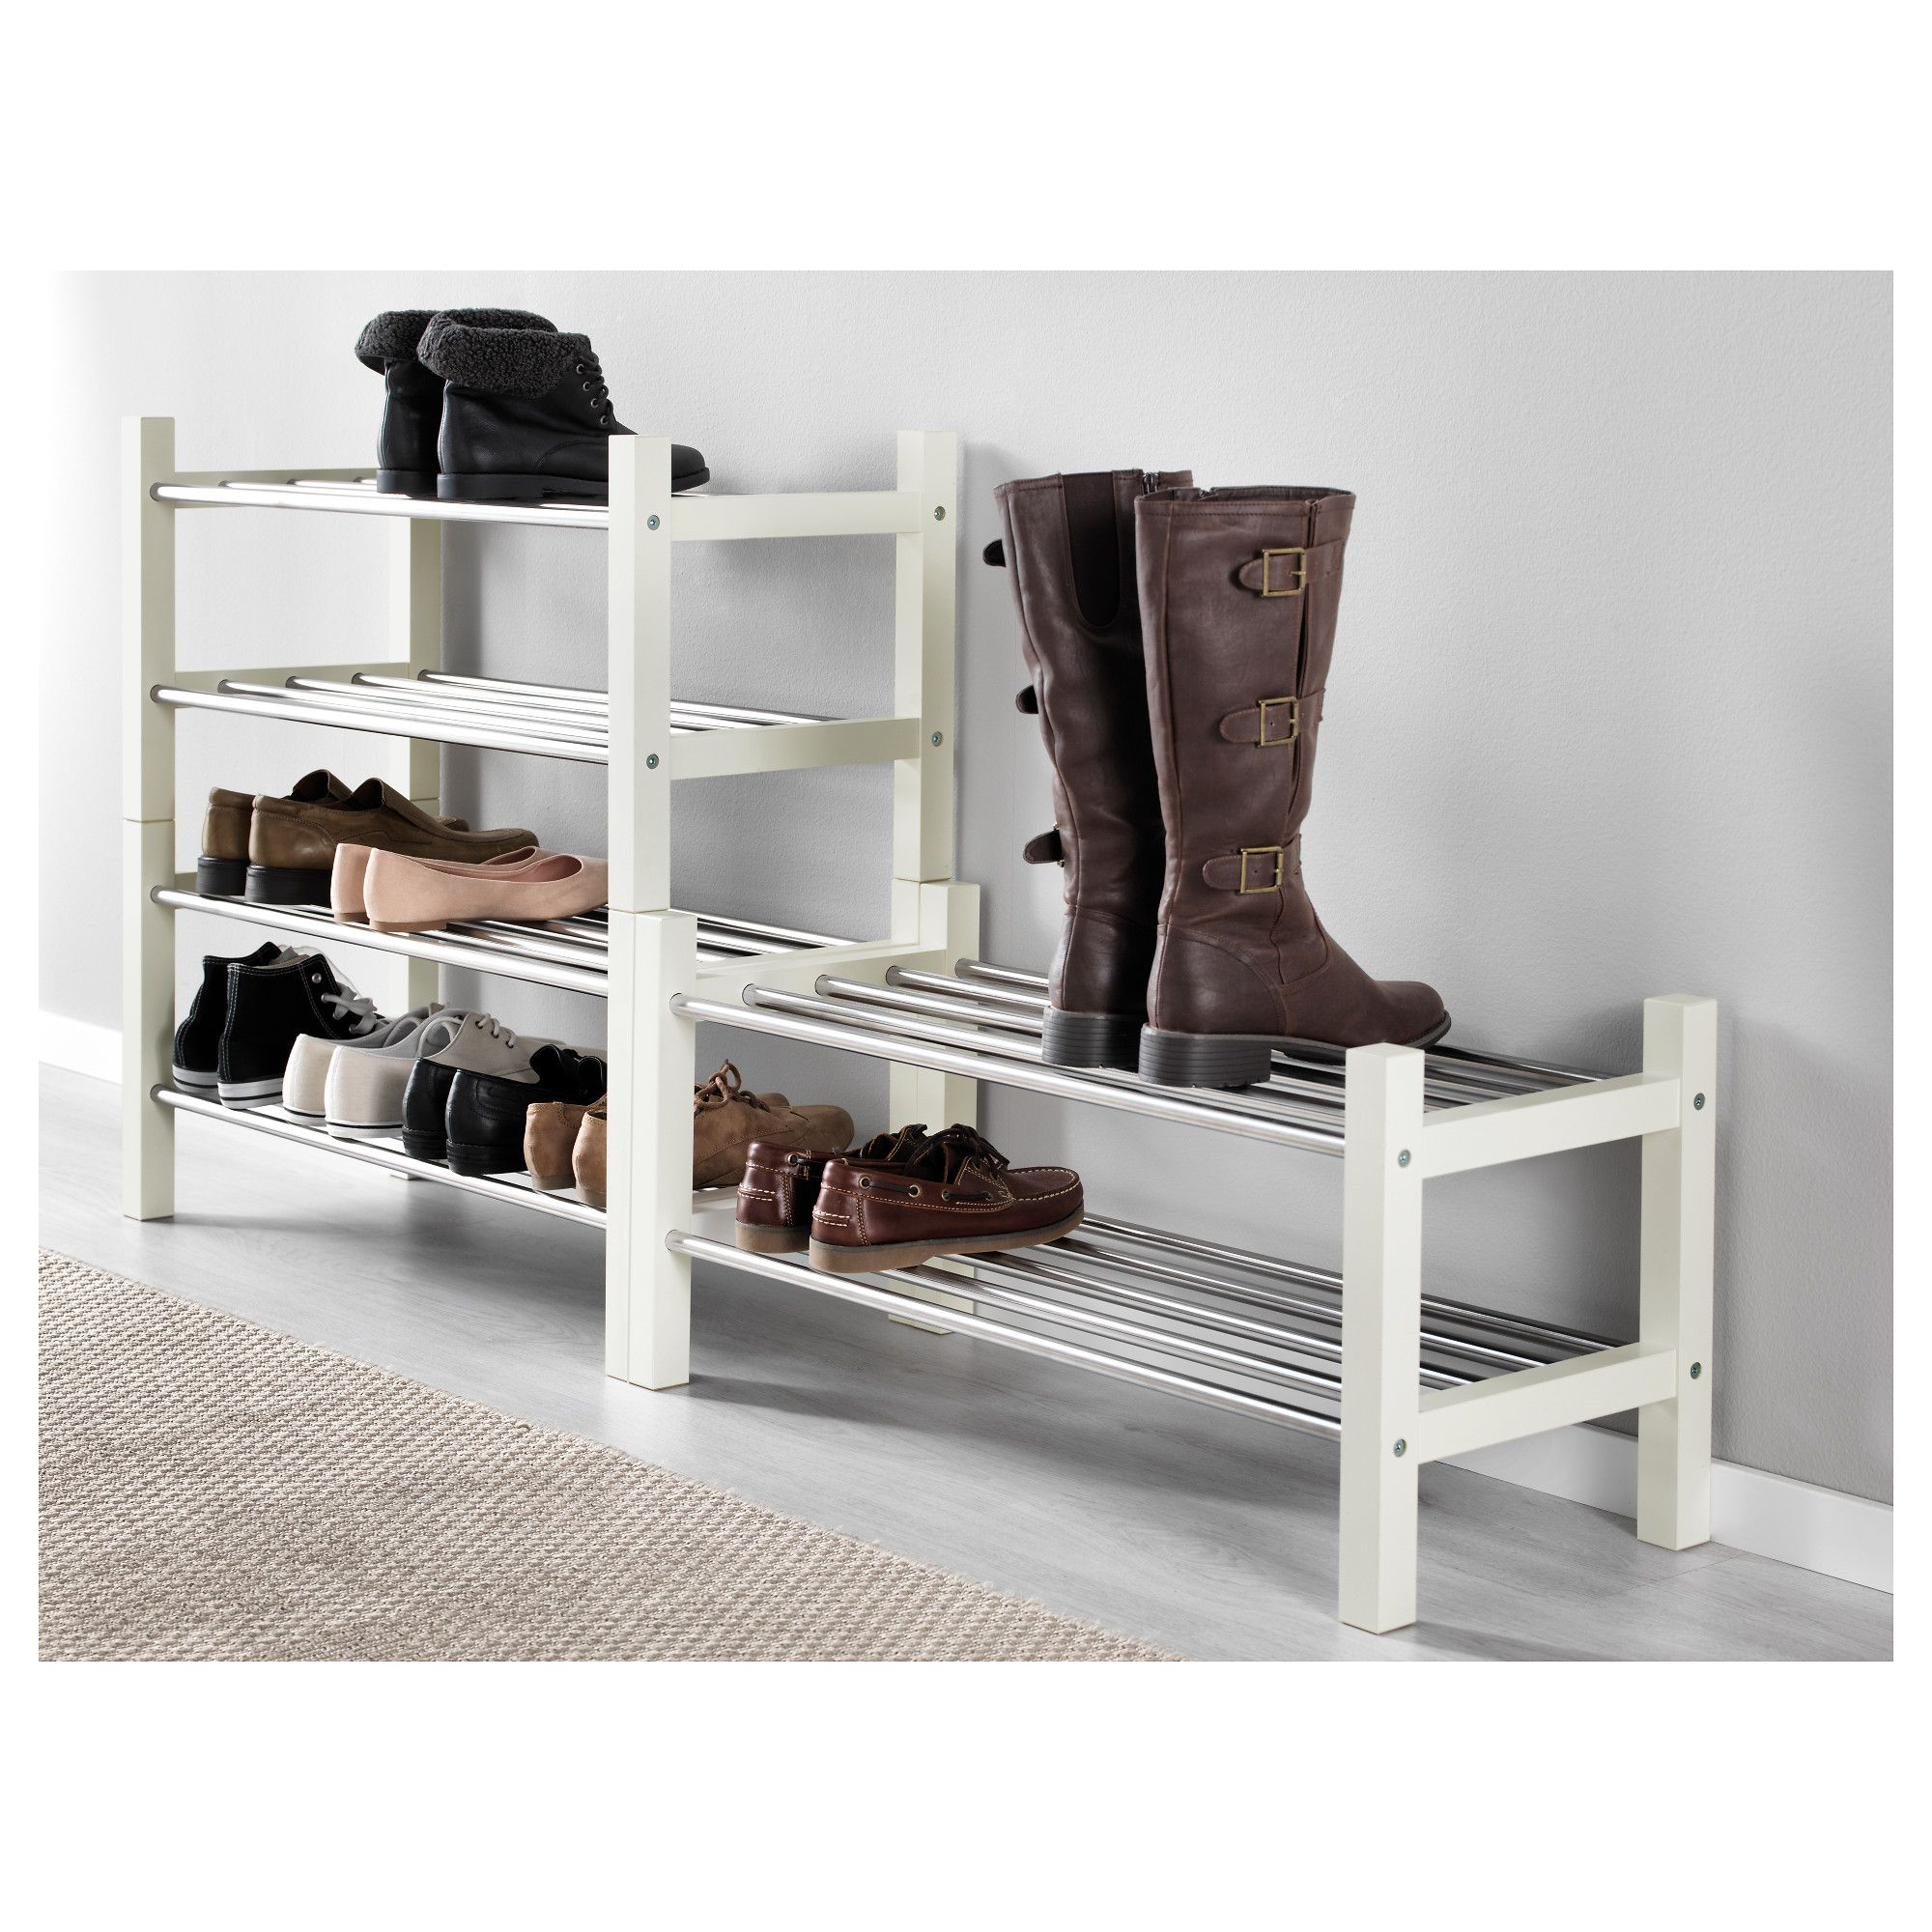 8908a4fc80380626d4cd5894d76fc124 - Better Homes And Gardens 2 Tier Stackable Shoe Rack